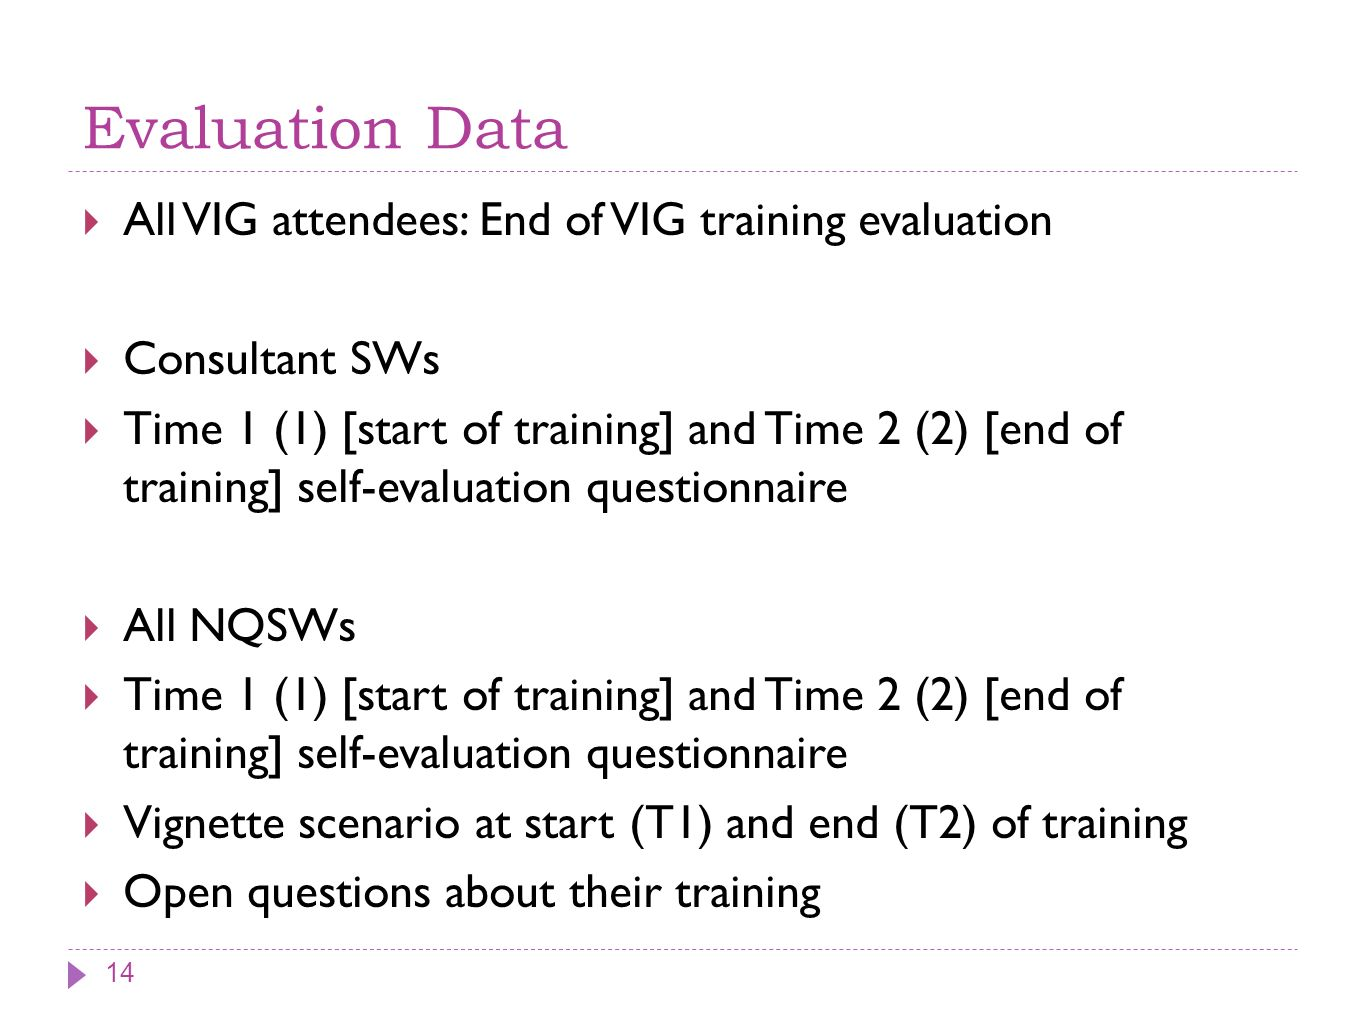 Evaluation Data All VIG attendees: End of VIG training evaluation Consultant SWs Time 1 (1) [start of training] and Time 2 (2) [end of training] self-evaluation questionnaire All NQSWs Time 1 (1) [start of training] and Time 2 (2) [end of training] self-evaluation questionnaire Vignette scenario at start (T1) and end (T2) of training Open questions about their training 14